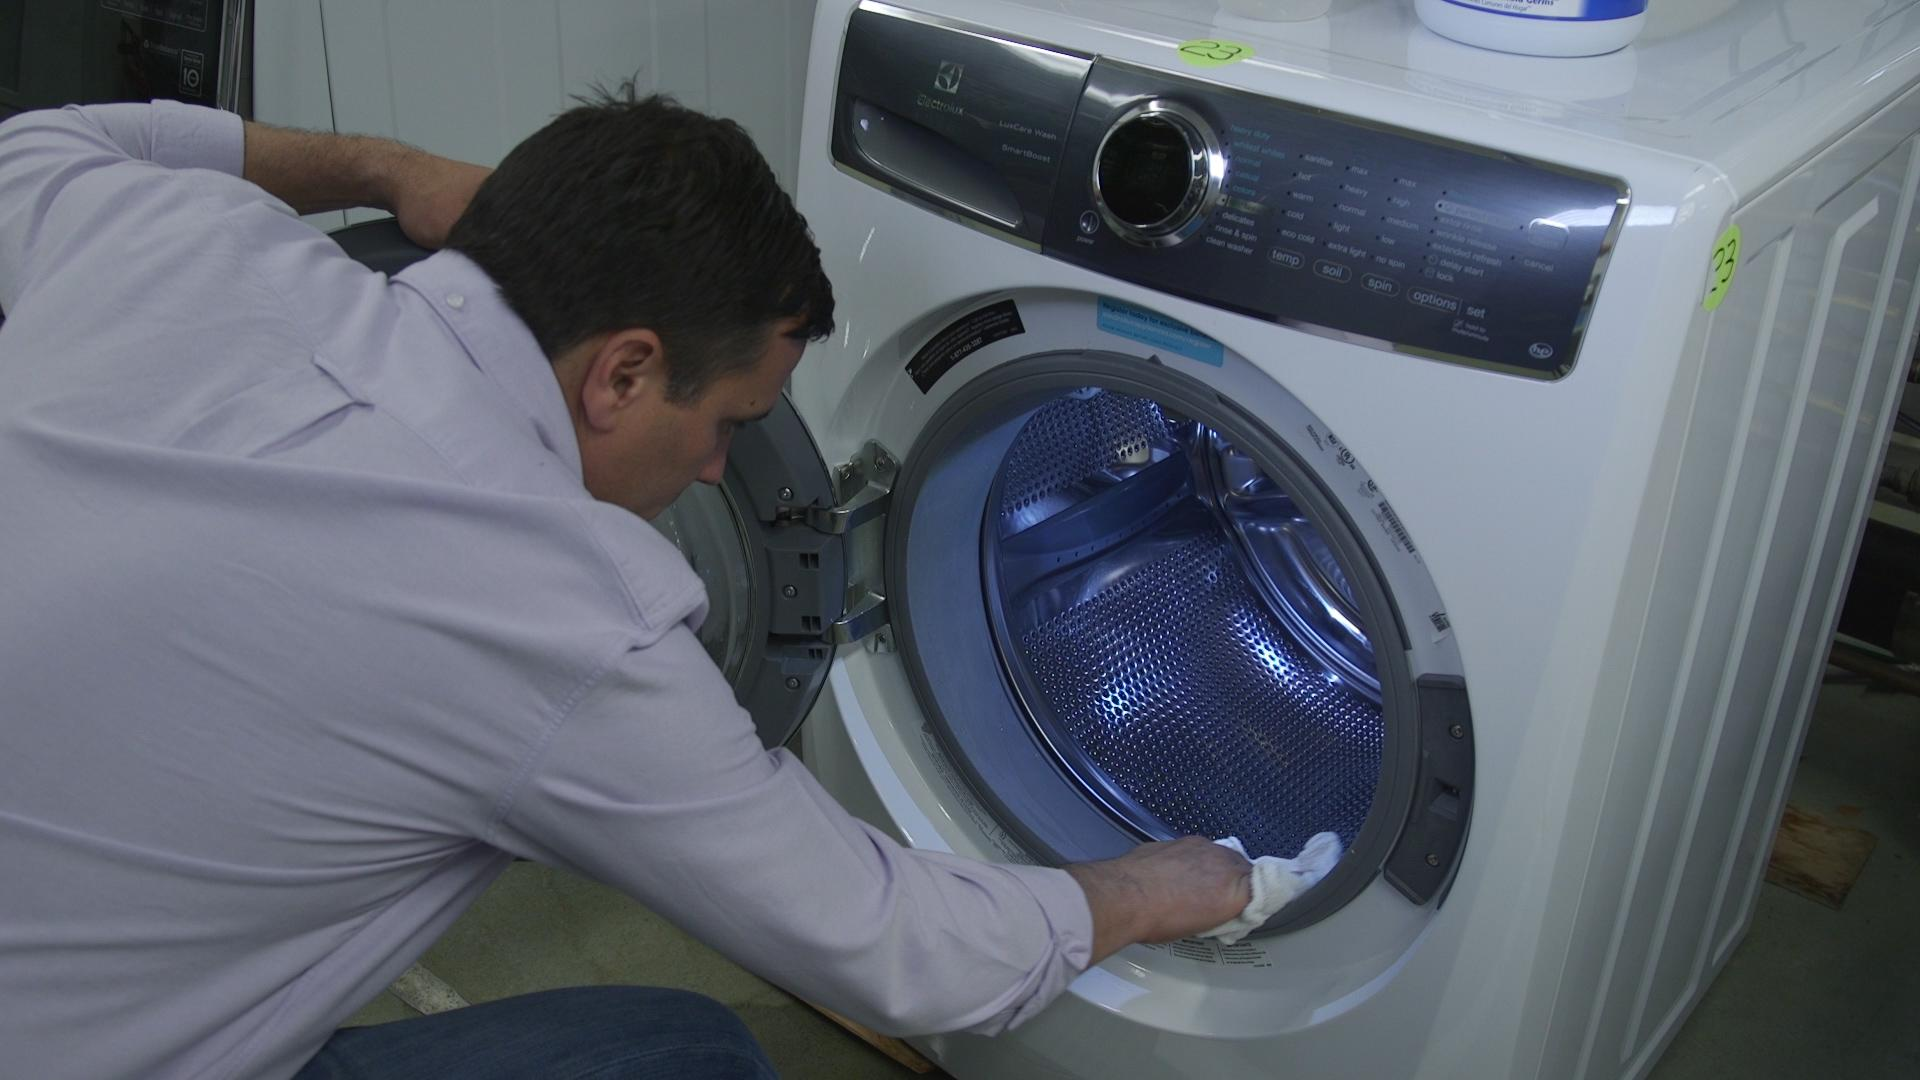 cleaning washing machine - Cleaning Your Washing Machine